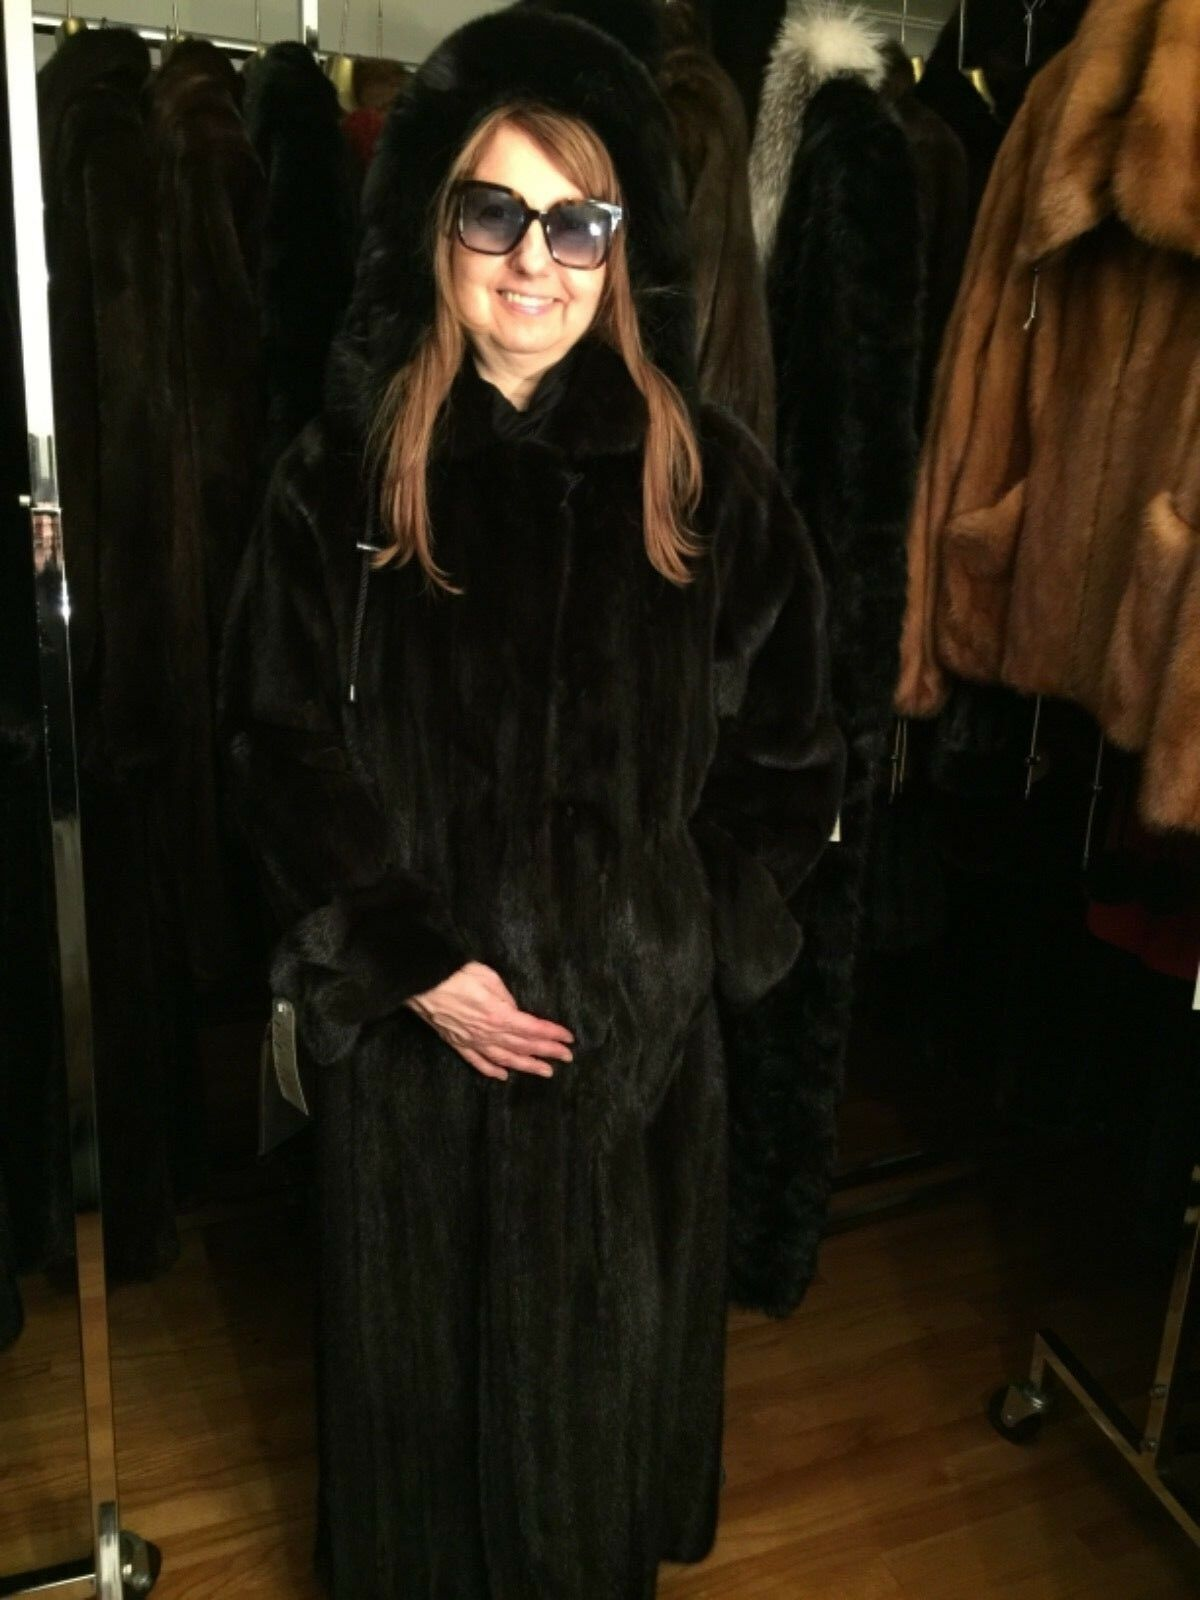 BRAND NEW W TAGS PIERRE BALMAINE FEMALE RANCH MINK COAT W HOOD.SIZE M. 10500.00